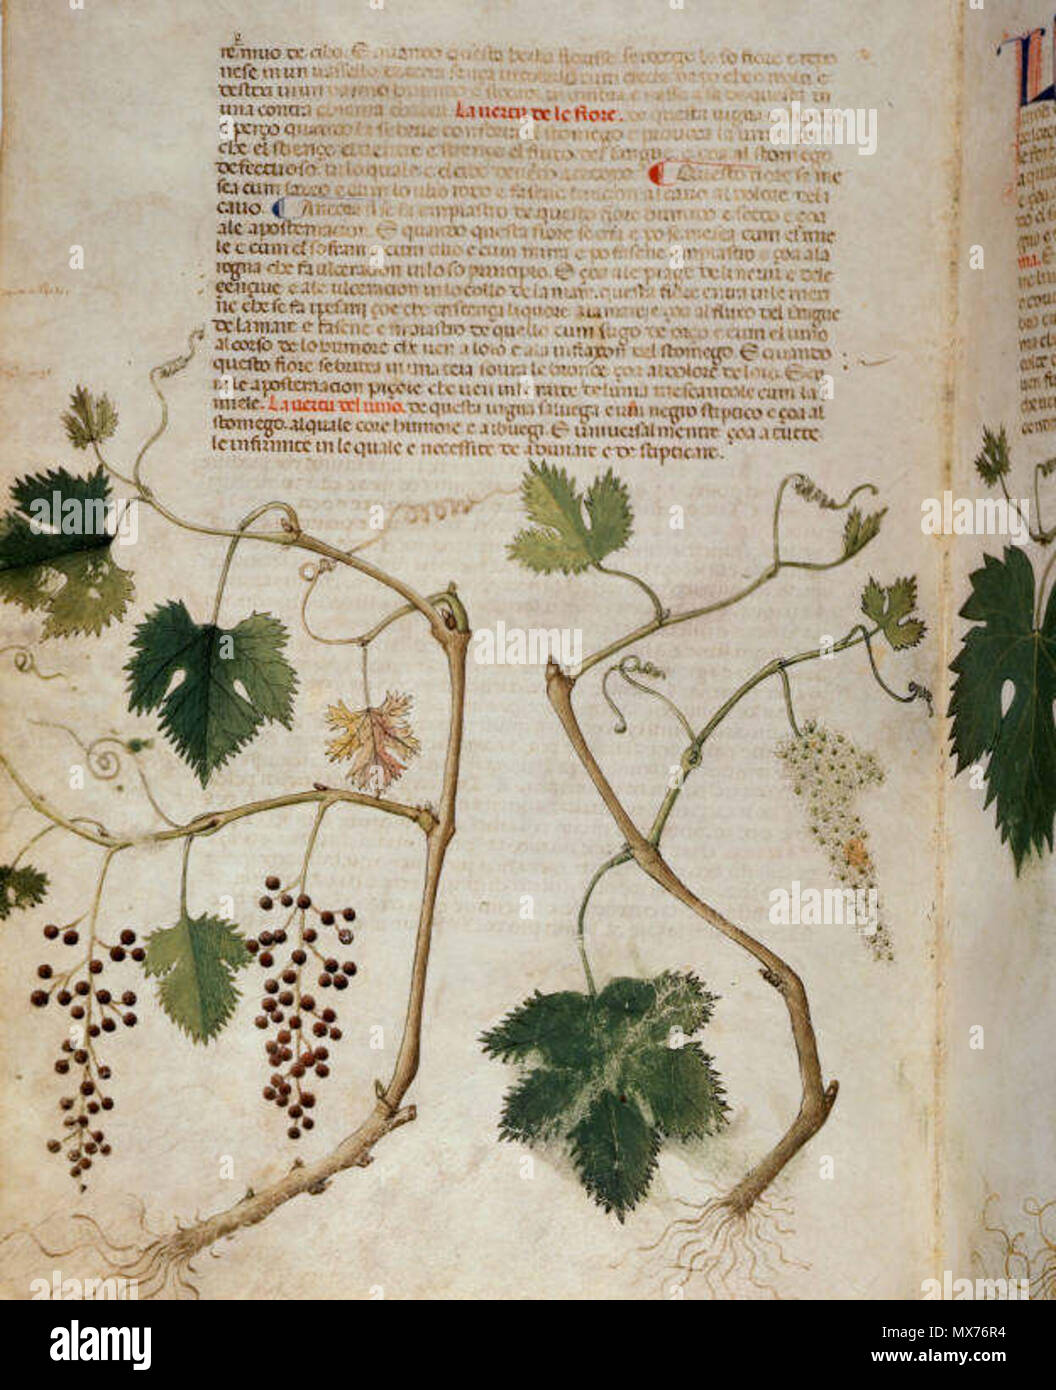 . English: arapion the Younger, Translation of the herbal (The 'Carrara Herbal'), including the Liber agrega, Herbolario volgare; De medicamentis, with index (ff. 263-265) Italy, N. (Padua); between c. 1390 and 1404 . between c. 1390 and 1404. An Italian translation, possibly from a Latin translation, of a treatise orginally written in Arabic by Serapion the Younger (Ibn Sarabi, likely 12th century). 115 Carrara Herbal19 - Stock Image